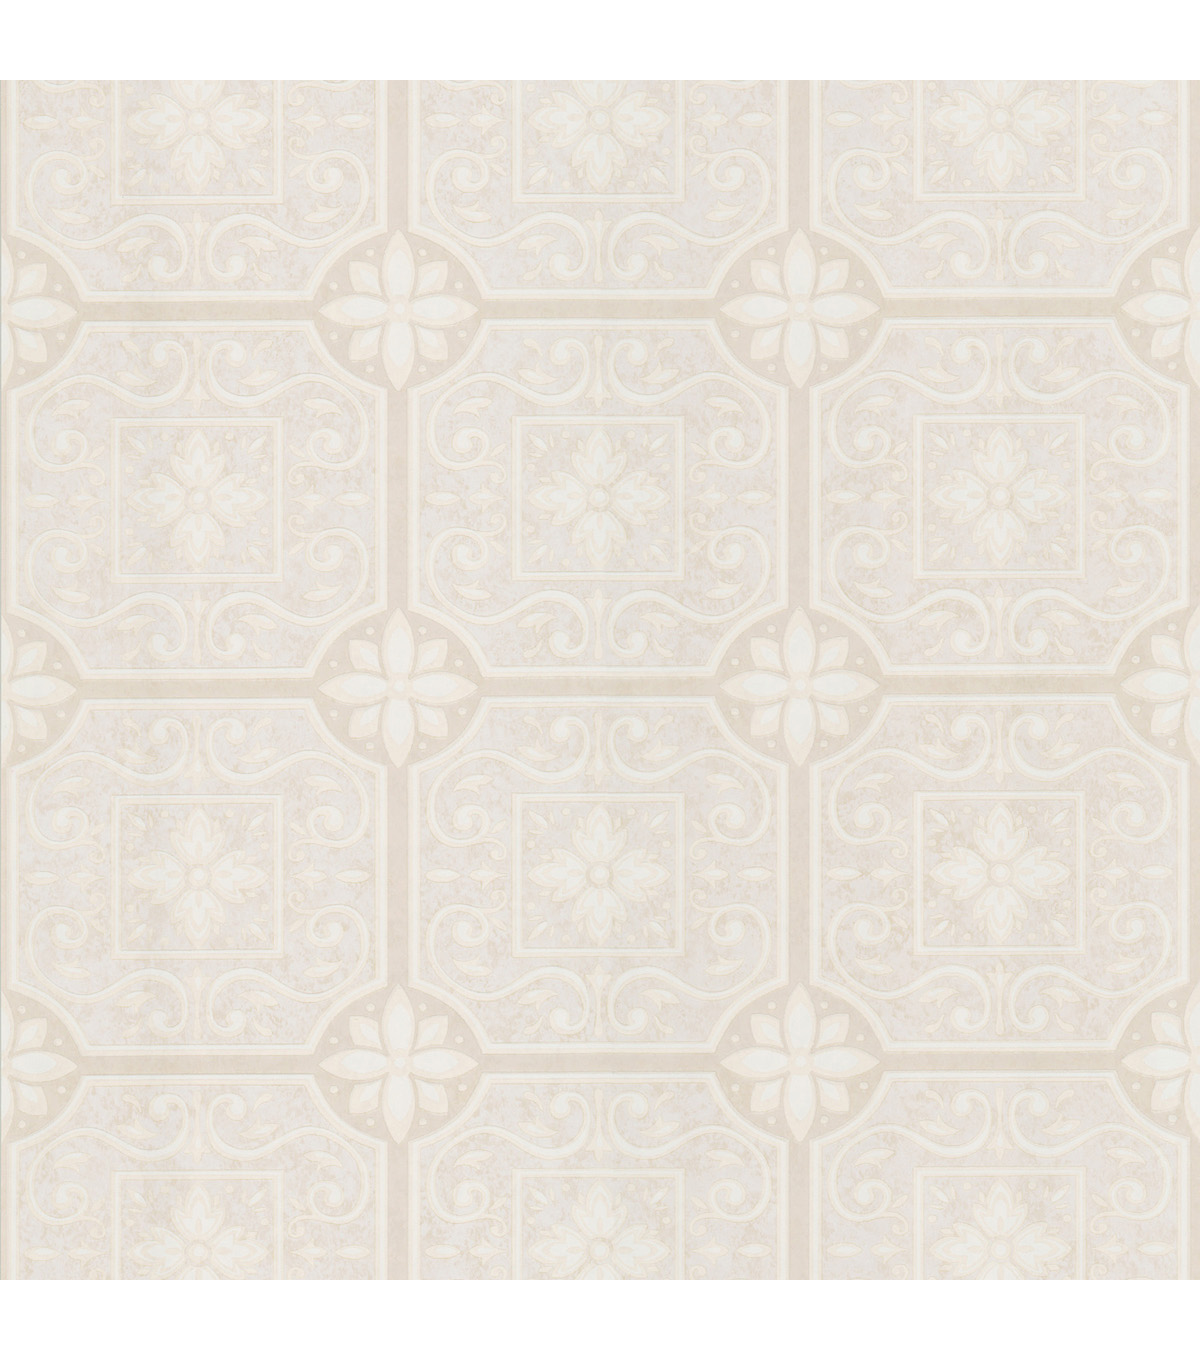 Victorianne Cream Tin Ceiling Tiles Wallpaper